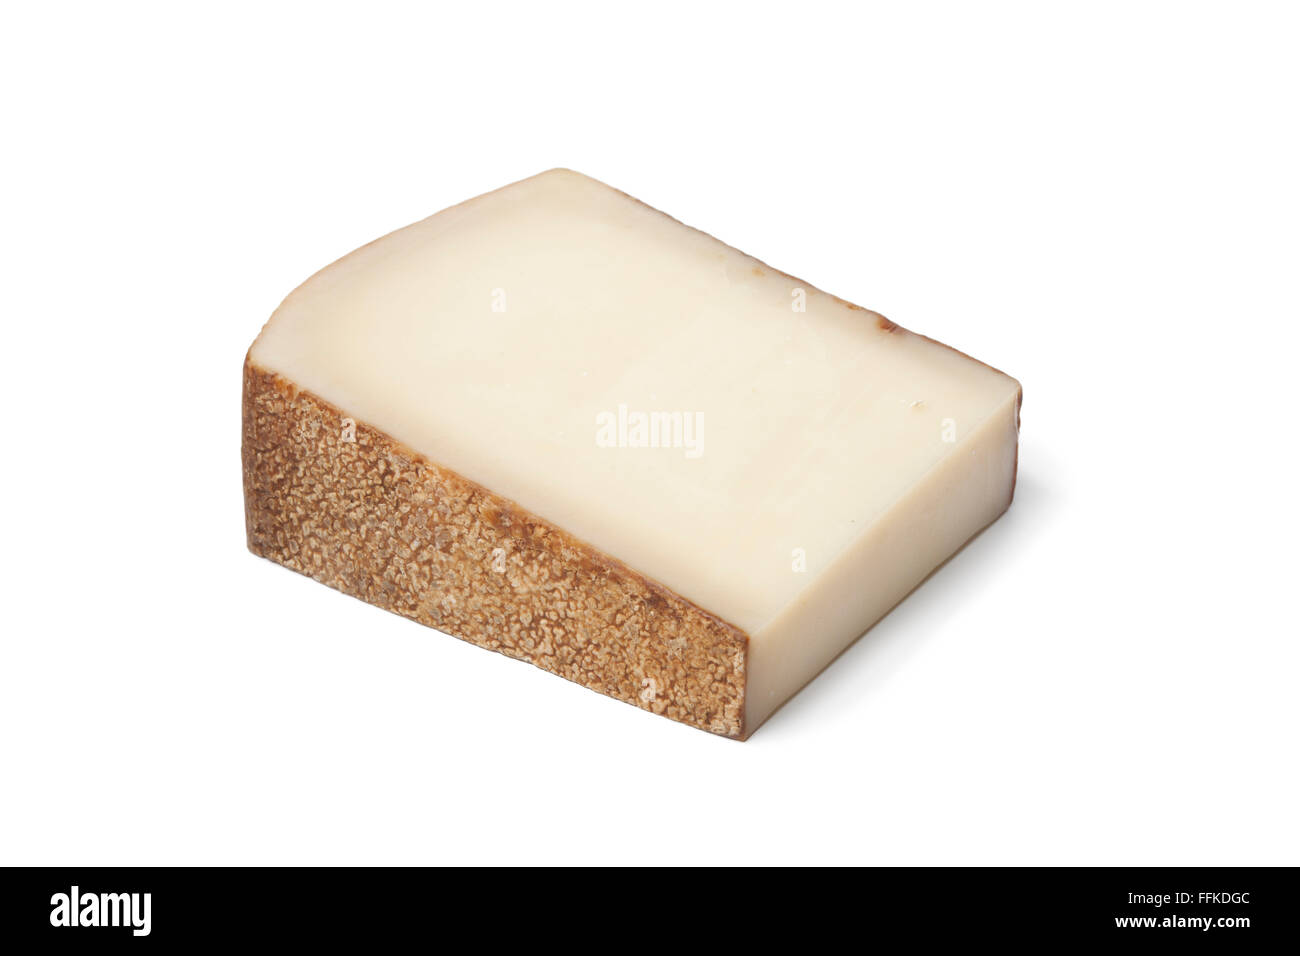 Piece of Swiss Gruyere cheese on white background - Stock Image